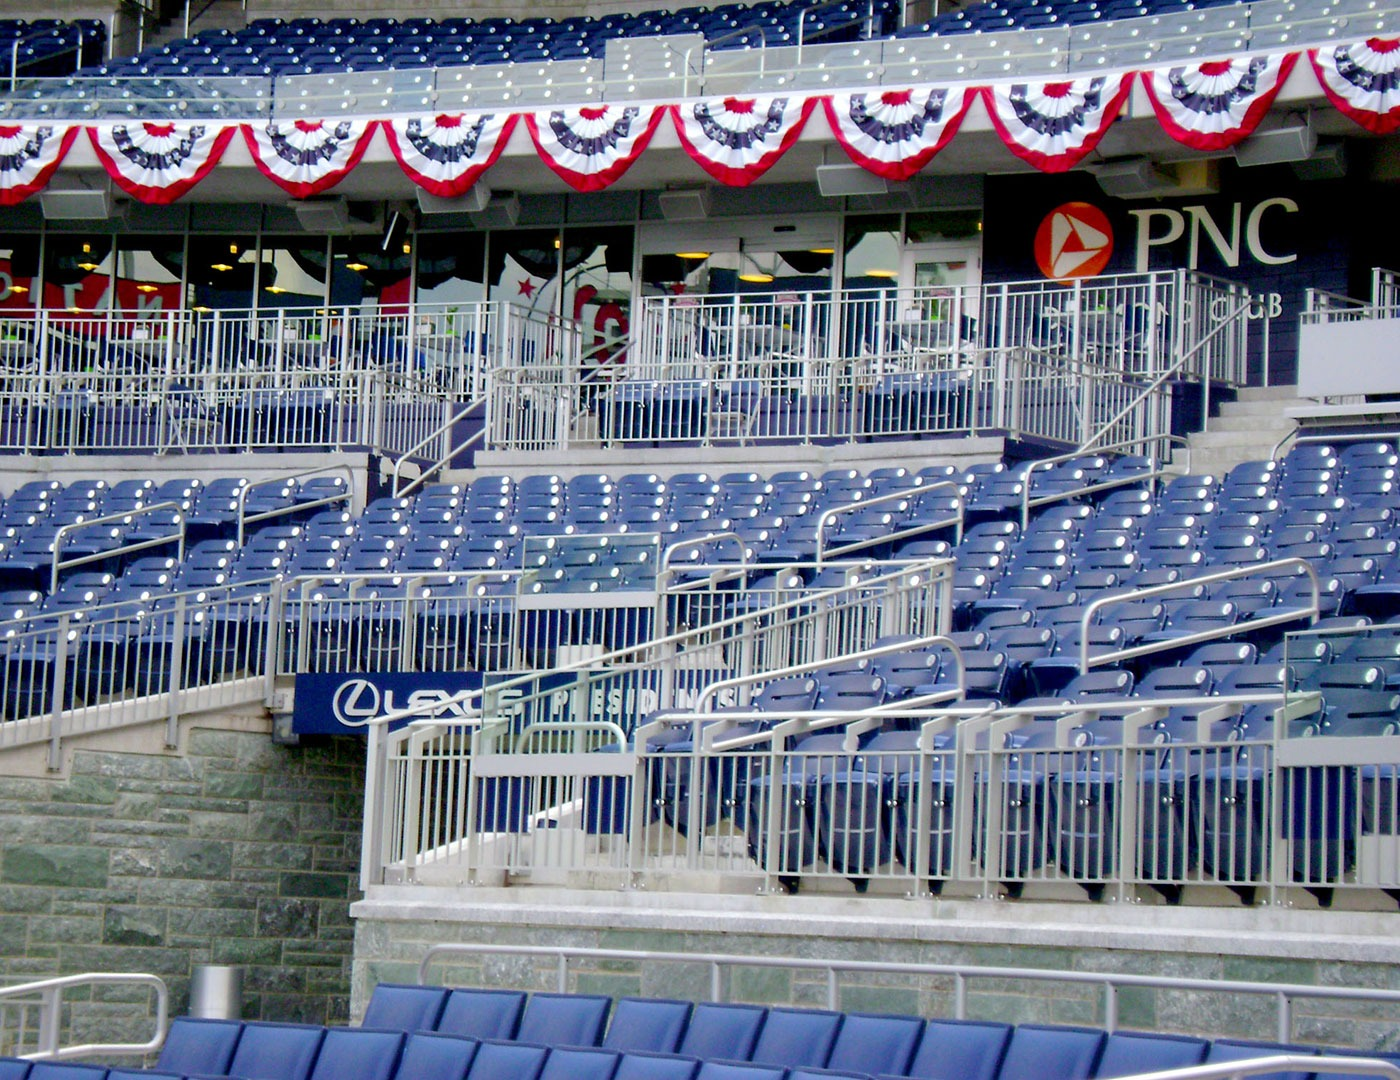 Nationals Park features Classic Picket railing